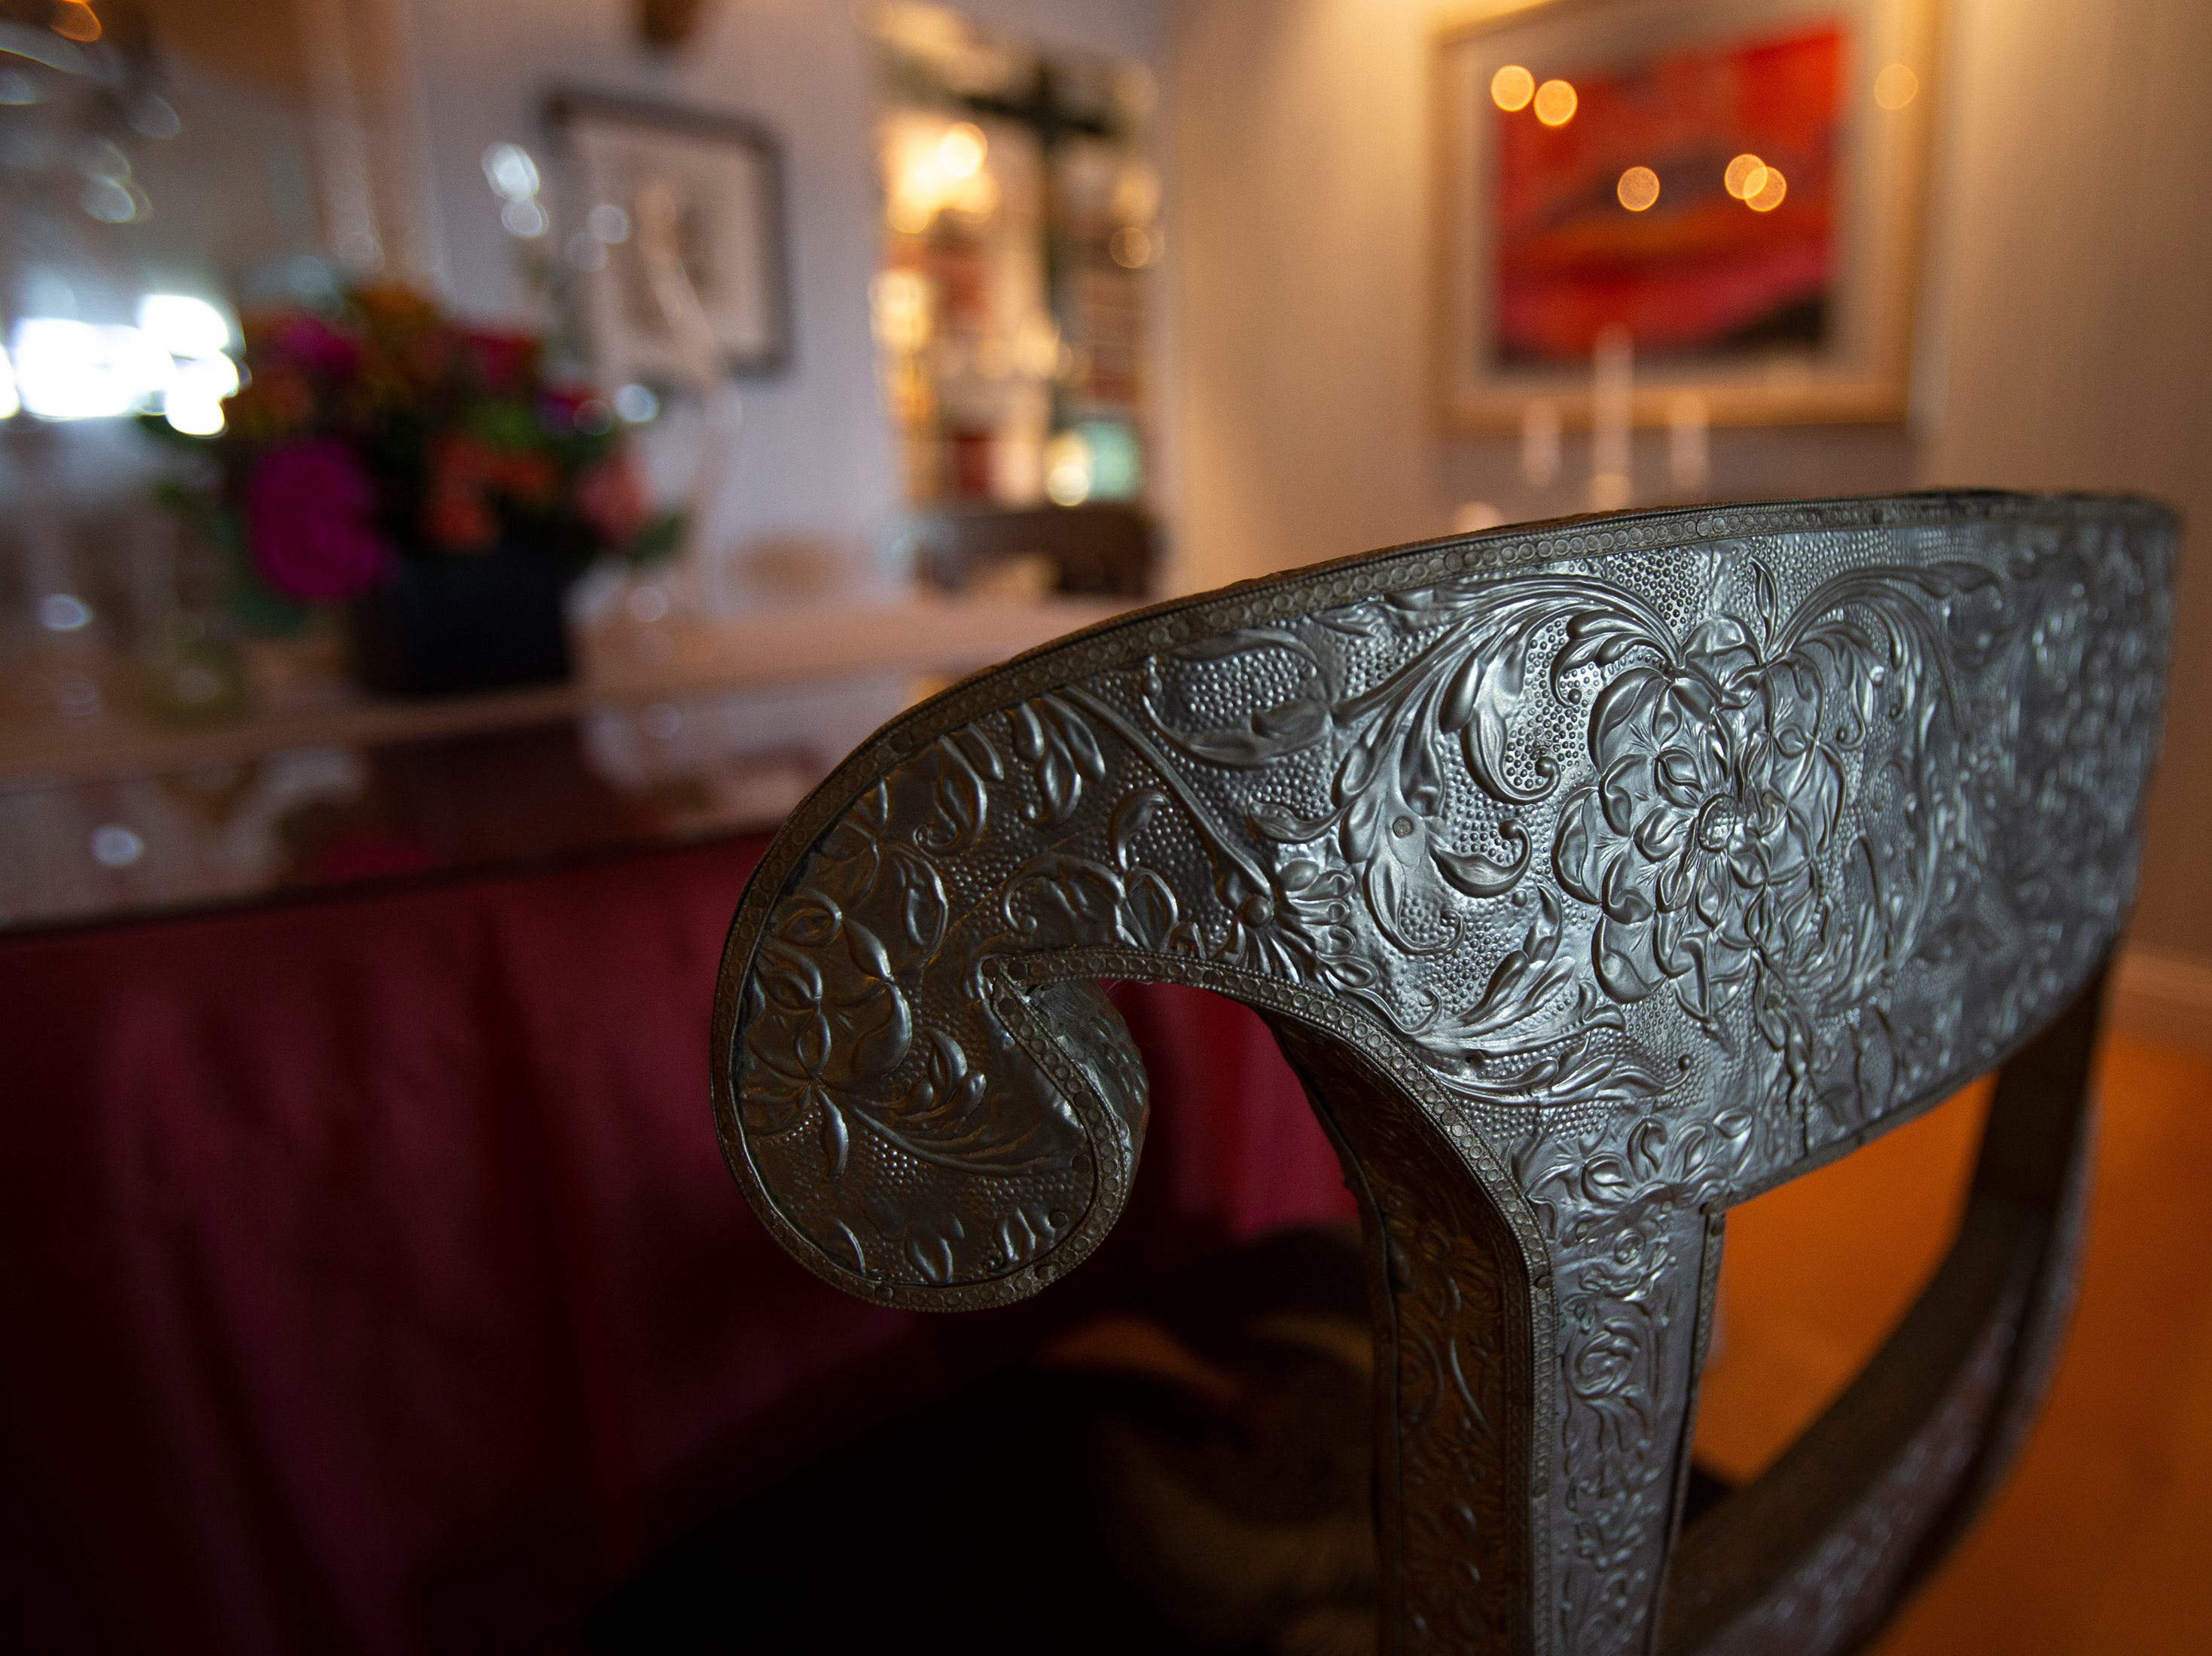 A coin silver dining room chair owned by Linda LaRue Brown is displayed at her Aqualane Shores home which will be featured in the Naples House and Garden Tour, Thursday, Jan. 24, 2019, in Naples.